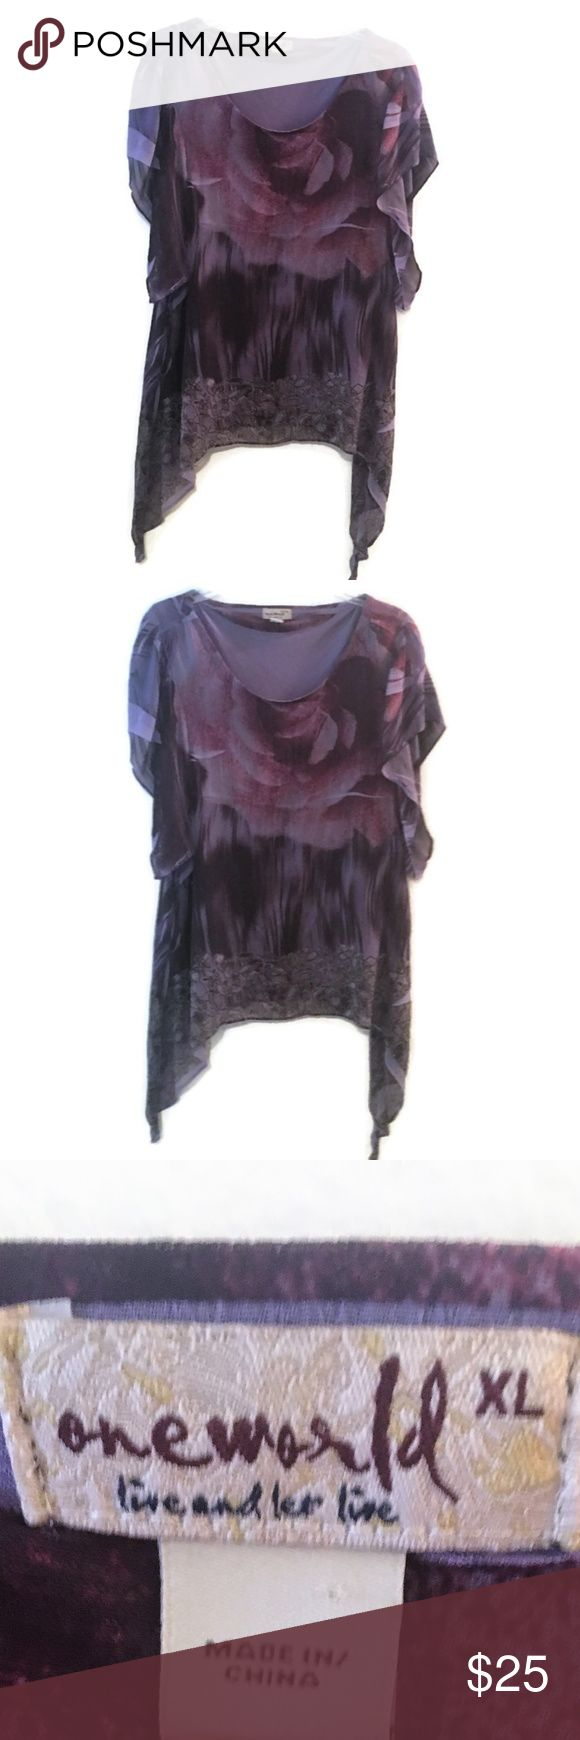 One World Tunic - XL Floral Rose Purple ~ EUC One World Tunic (Live and Let Live)  Size XL Shark Bite Hemline Beautiful Floral Print Scoop Neck Length (shoulder to bottom) - 26-36 inches Armpit to Armpit - 23 inches   ** EXCELLENT Used Condition ** Comes from Smoke Free Home No tag with fabric information ONE WORLD Tops Tunics